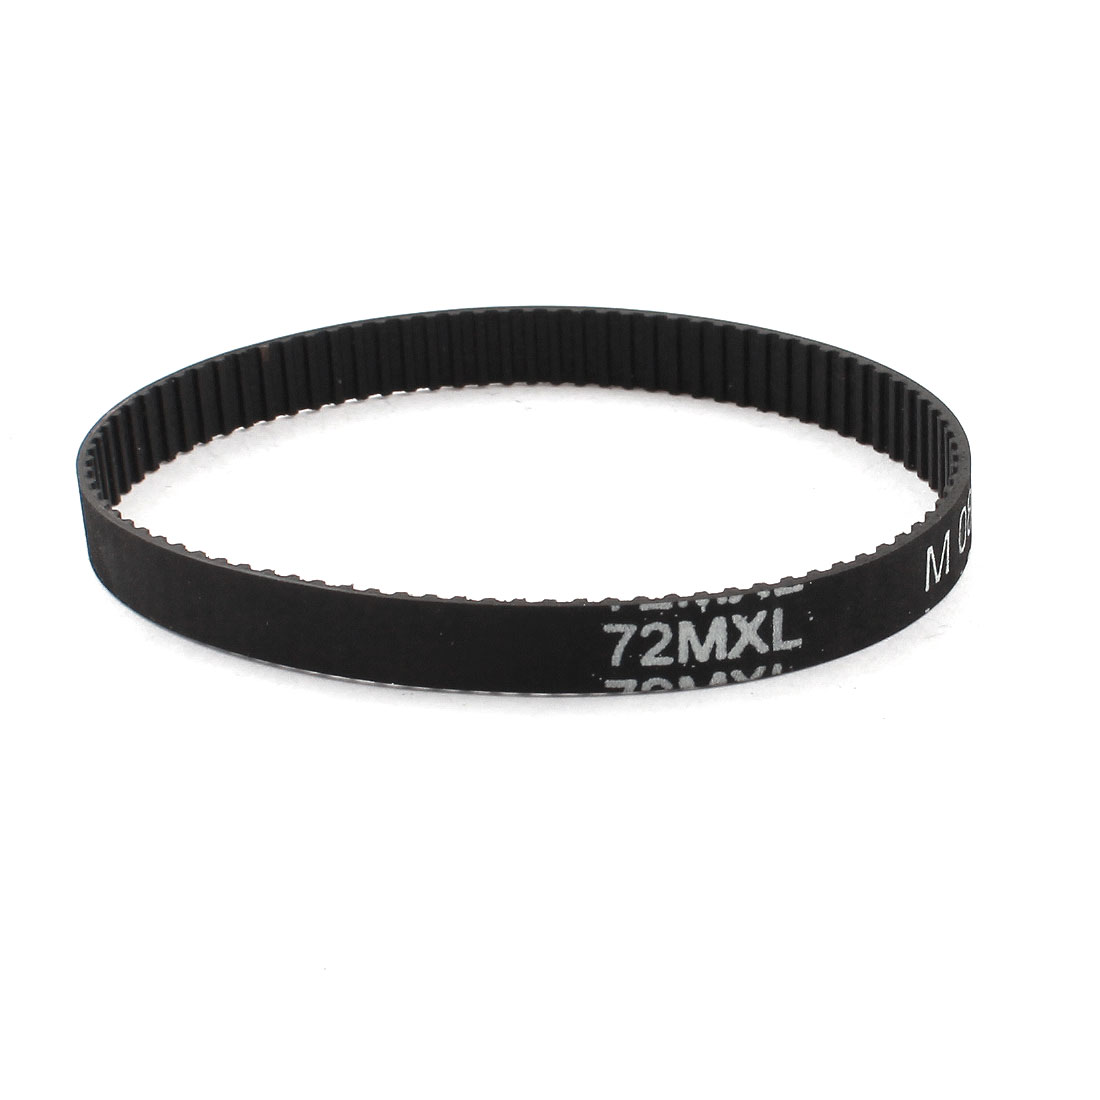 "72MXL025 90-Teeth 0.25"" Wide 2.032mm Pitch Black 3D Printer Groove Synchronous Timing Belt 7.2"" Girth"